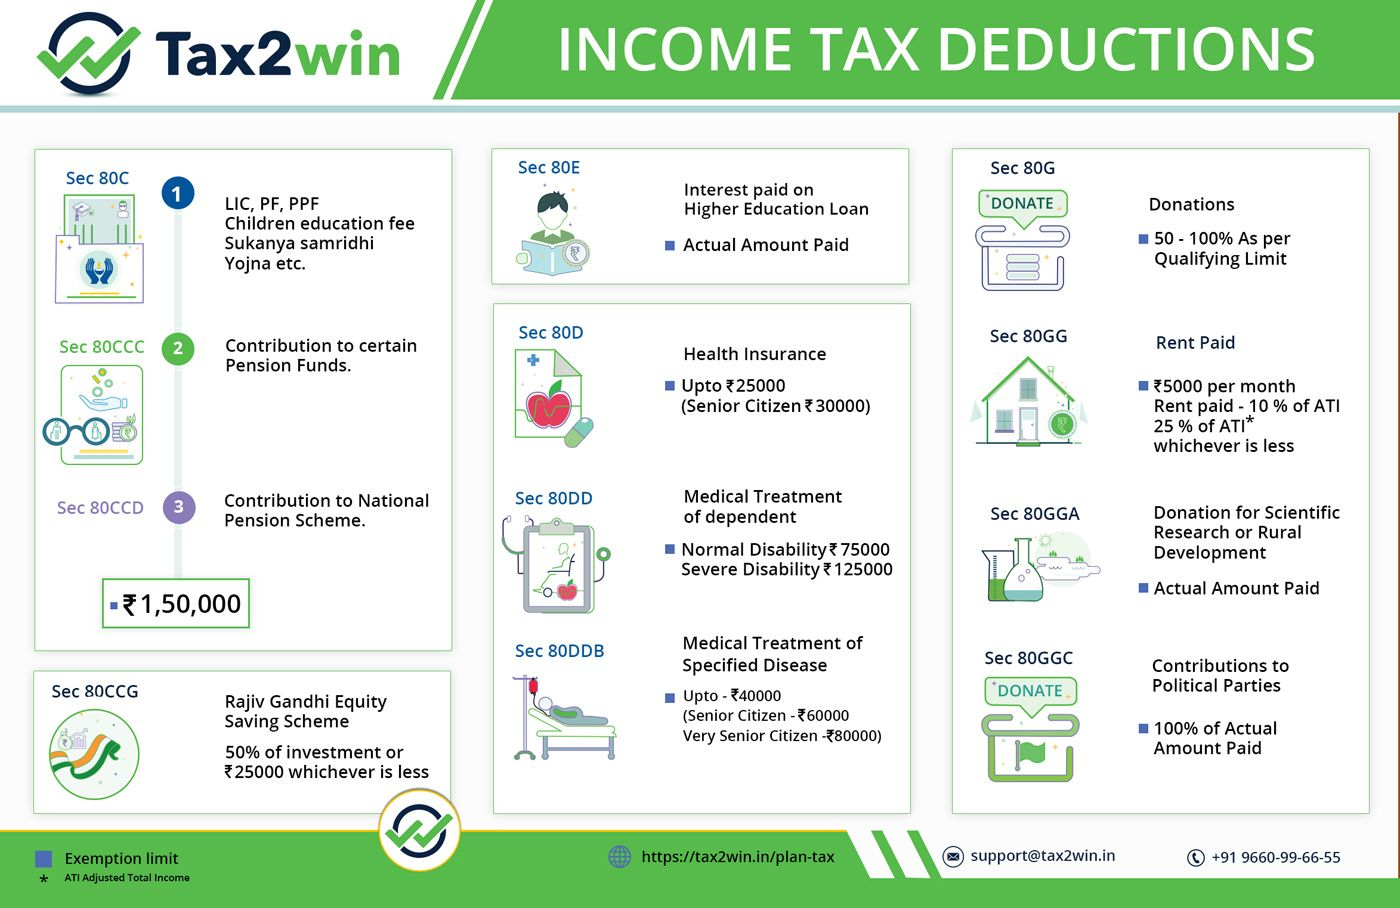 Deductions under Chapter VI A of Tax Act for FY